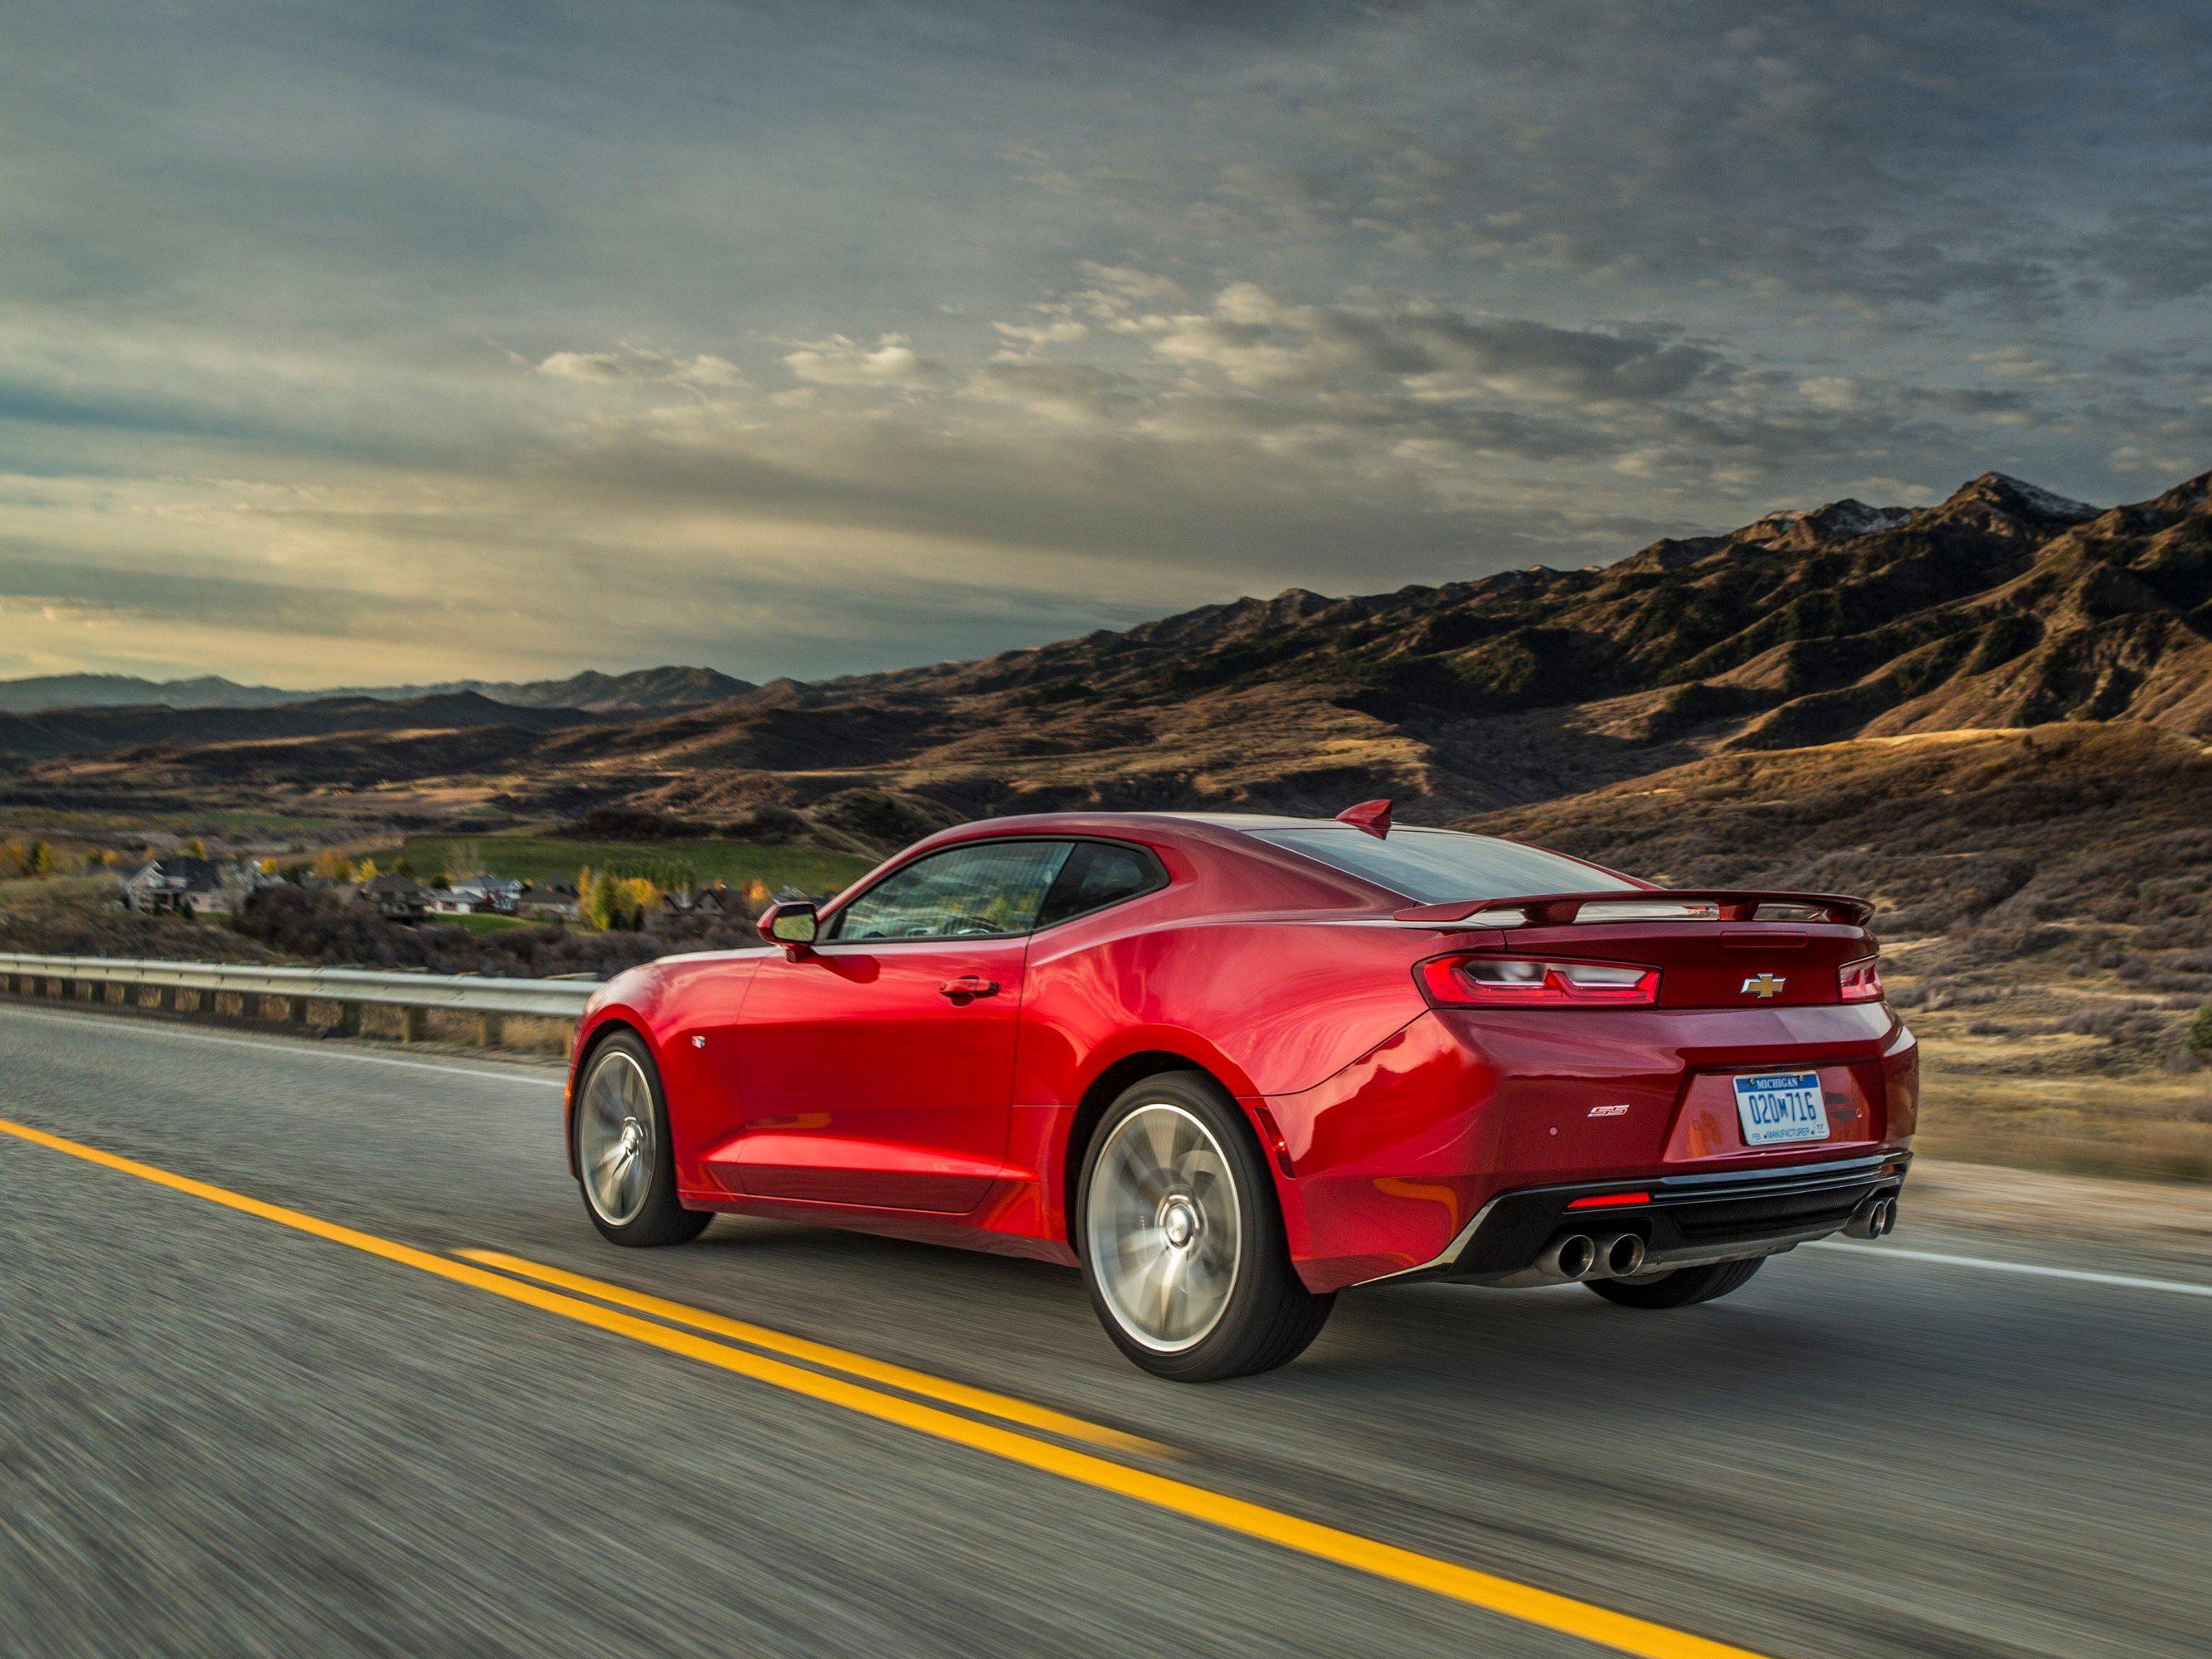 5. The 2016 Chevrolet Camaro has an all-new drive mode selector.